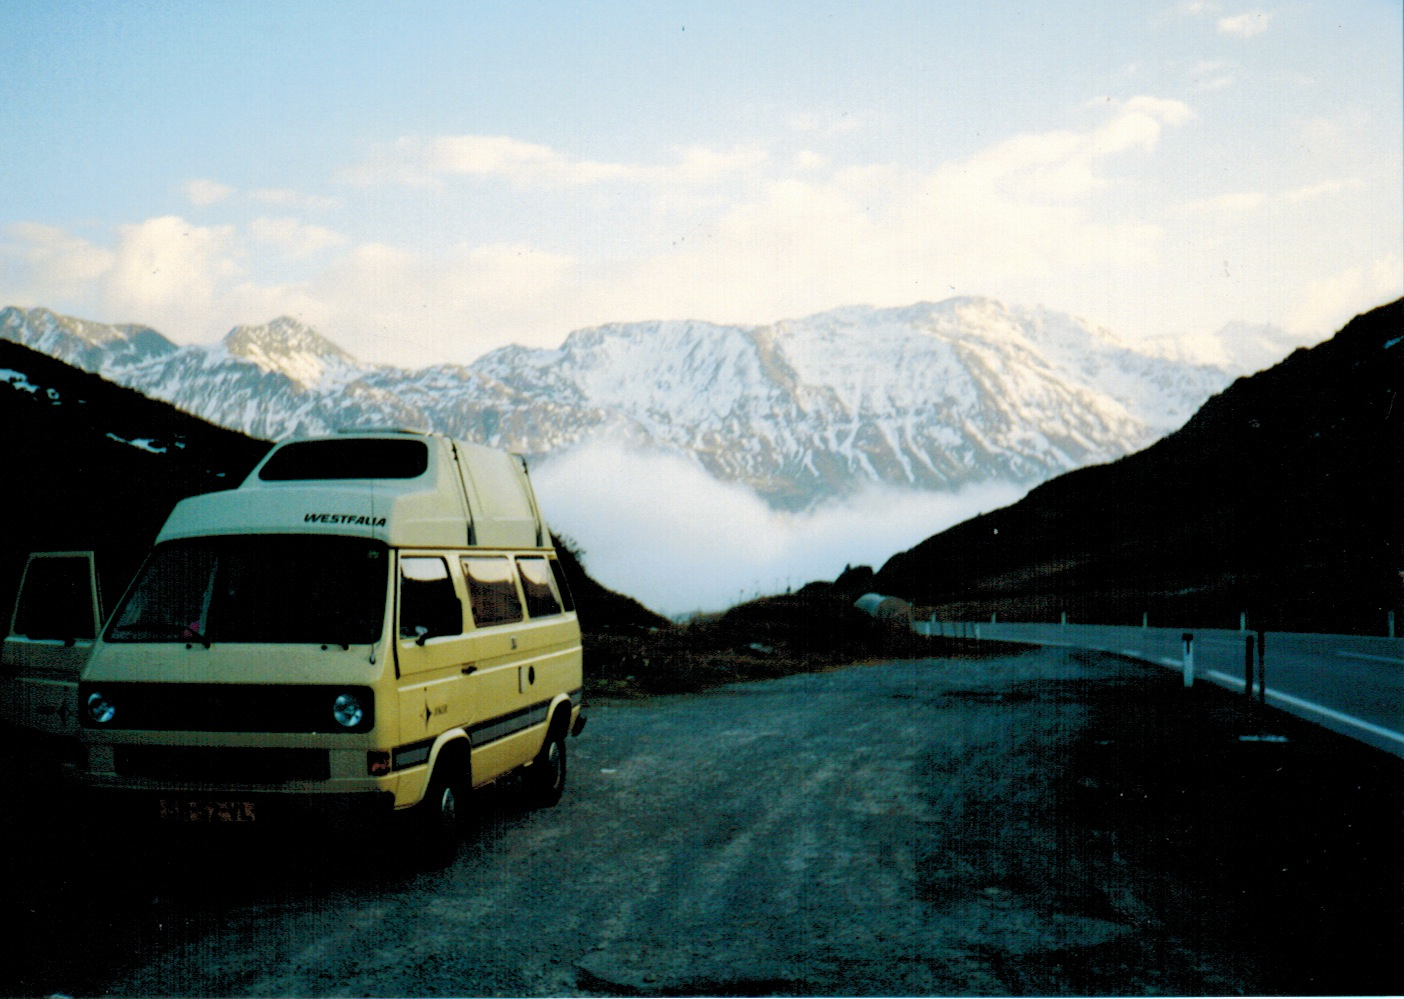 Our awesome camper van in theAlps